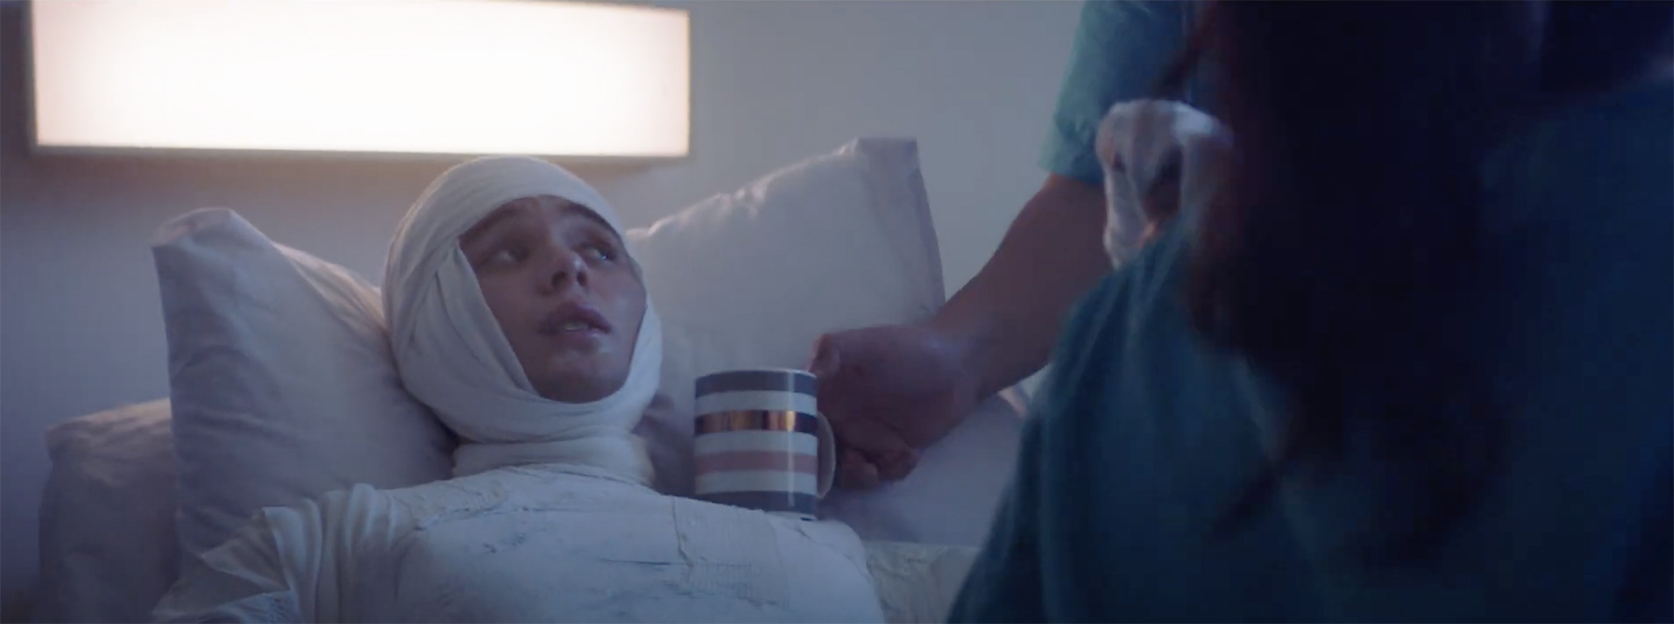 Pond's Men says don't be forgotten for having a dull face in new work via Ogilvy Singapore